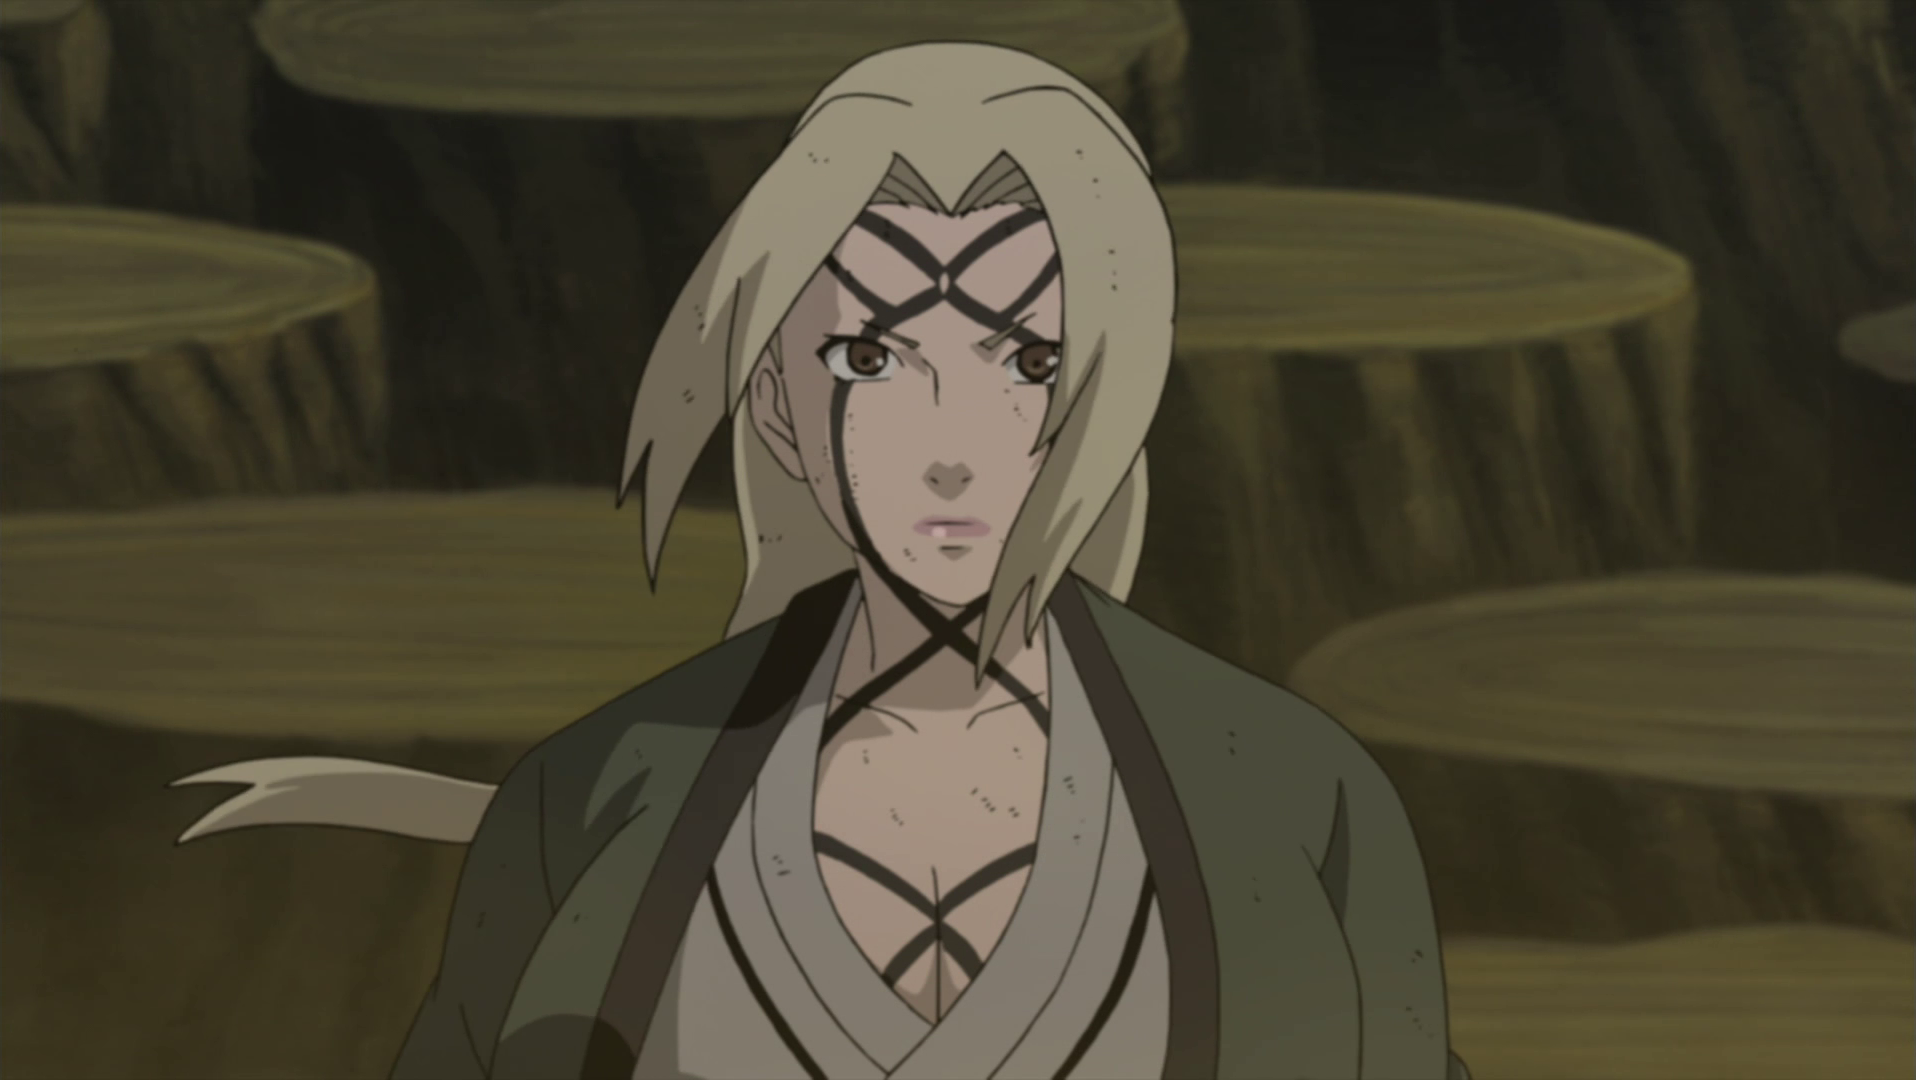 How old is Tsunade? - Quora